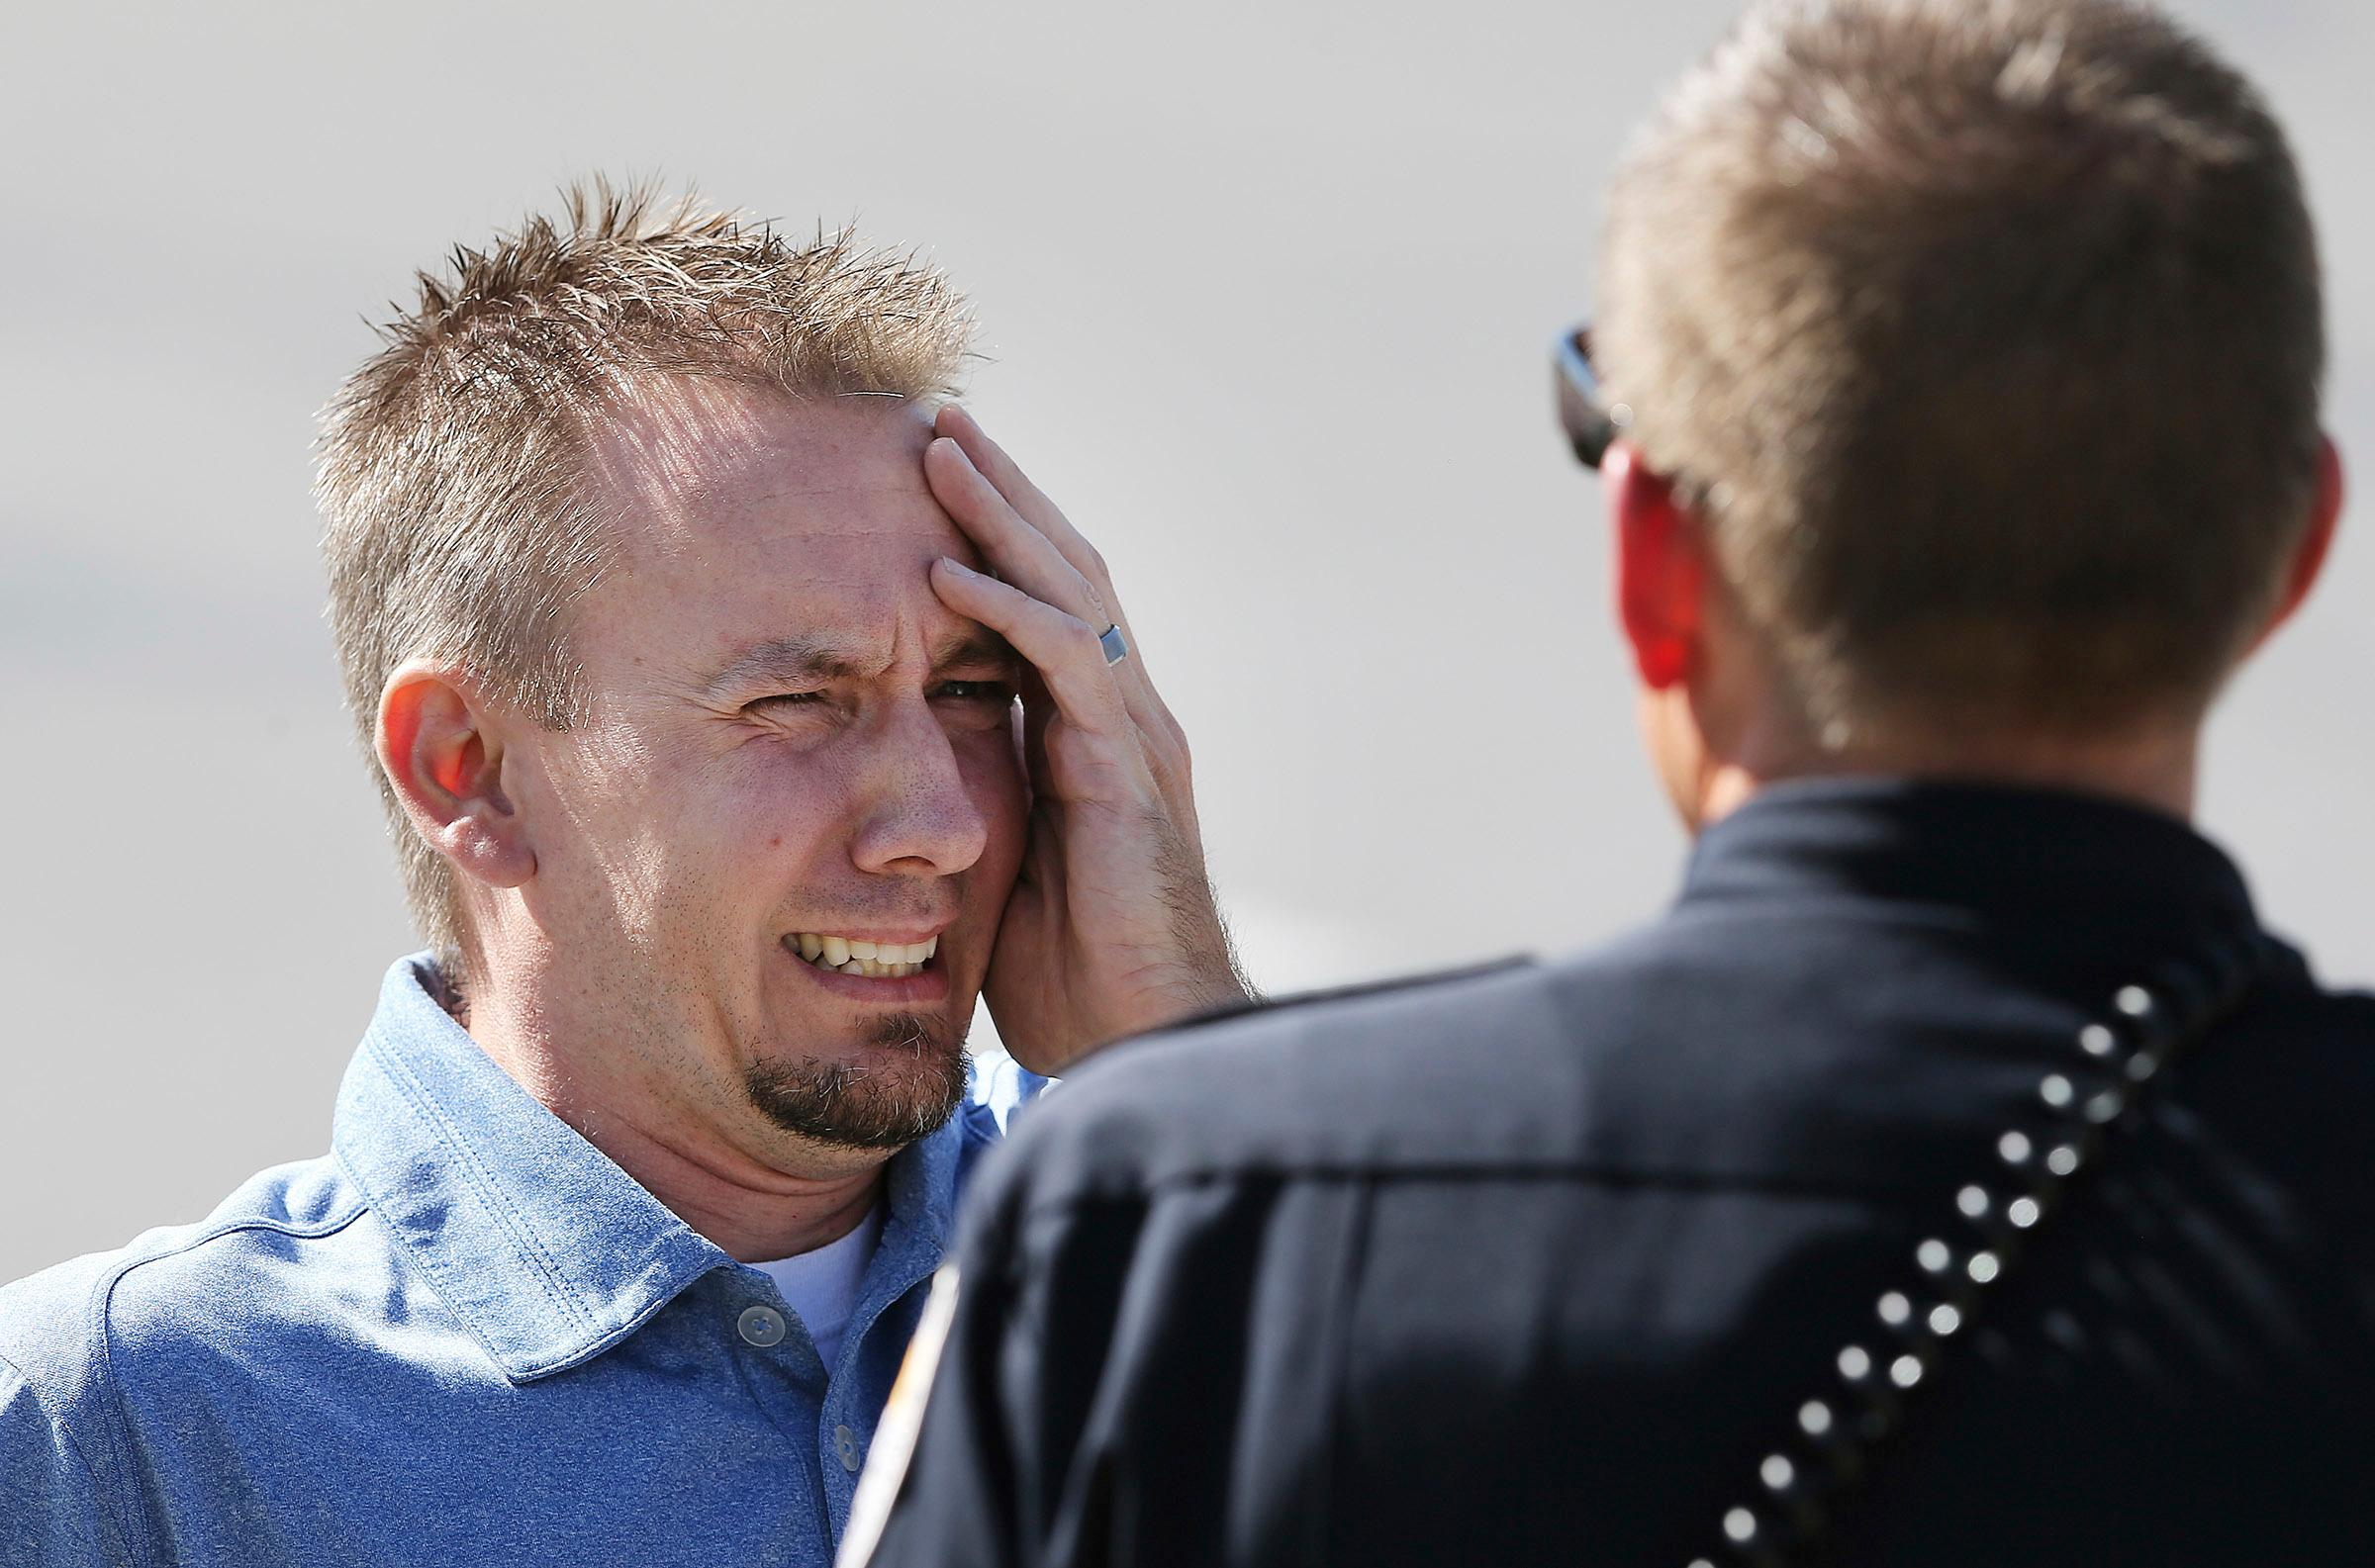 A man reacts as he talks to a Sandy police officer after a fatal shooting in the Salt Lake City suburb that left several people dead with another two injured, Tuesday, June 6, 2017, in Sandy, Utah. The shooting in a middle-class neighborhood in Sandy was reported to police as a domestic dispute, said Police Sgt. Jason Nielsen. (Scott G Winterton/The Deseret News via AP)